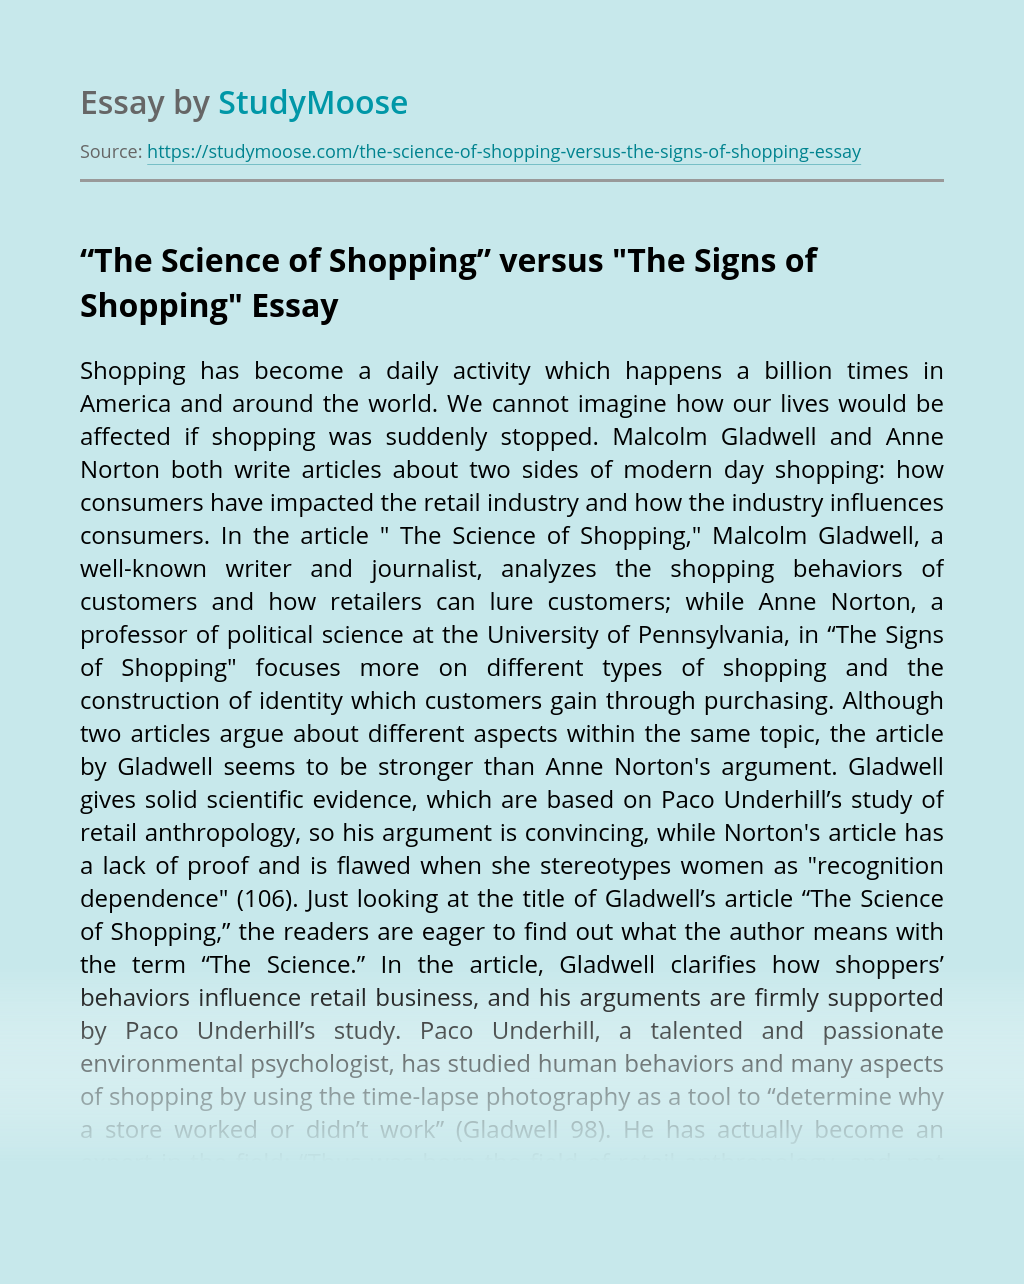 """The Science of Shopping"" versus"